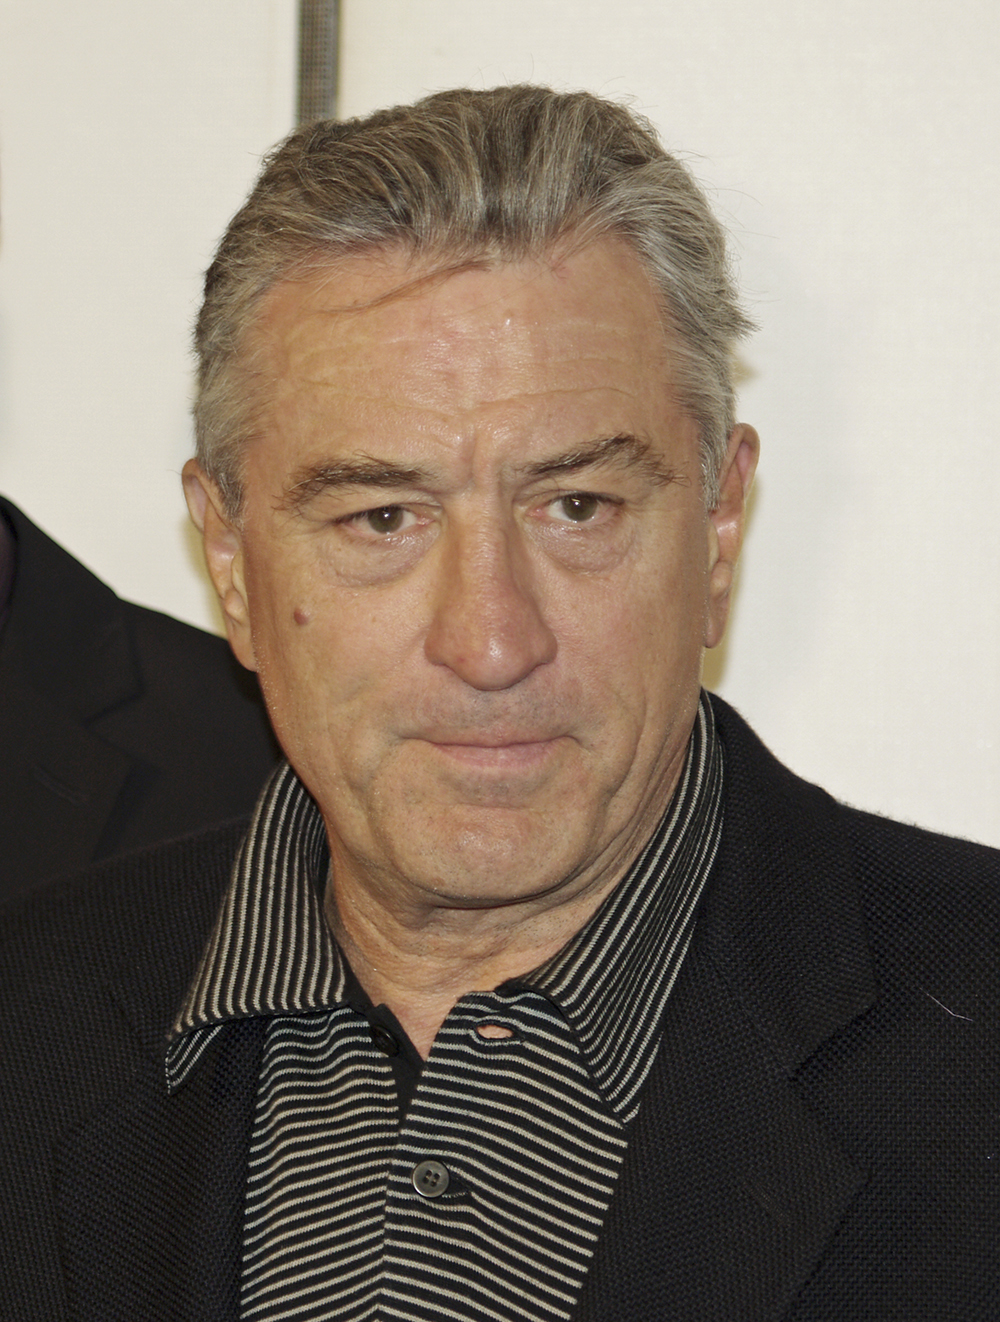 Robert_De_Niro_2_by_David_Shankbone copy